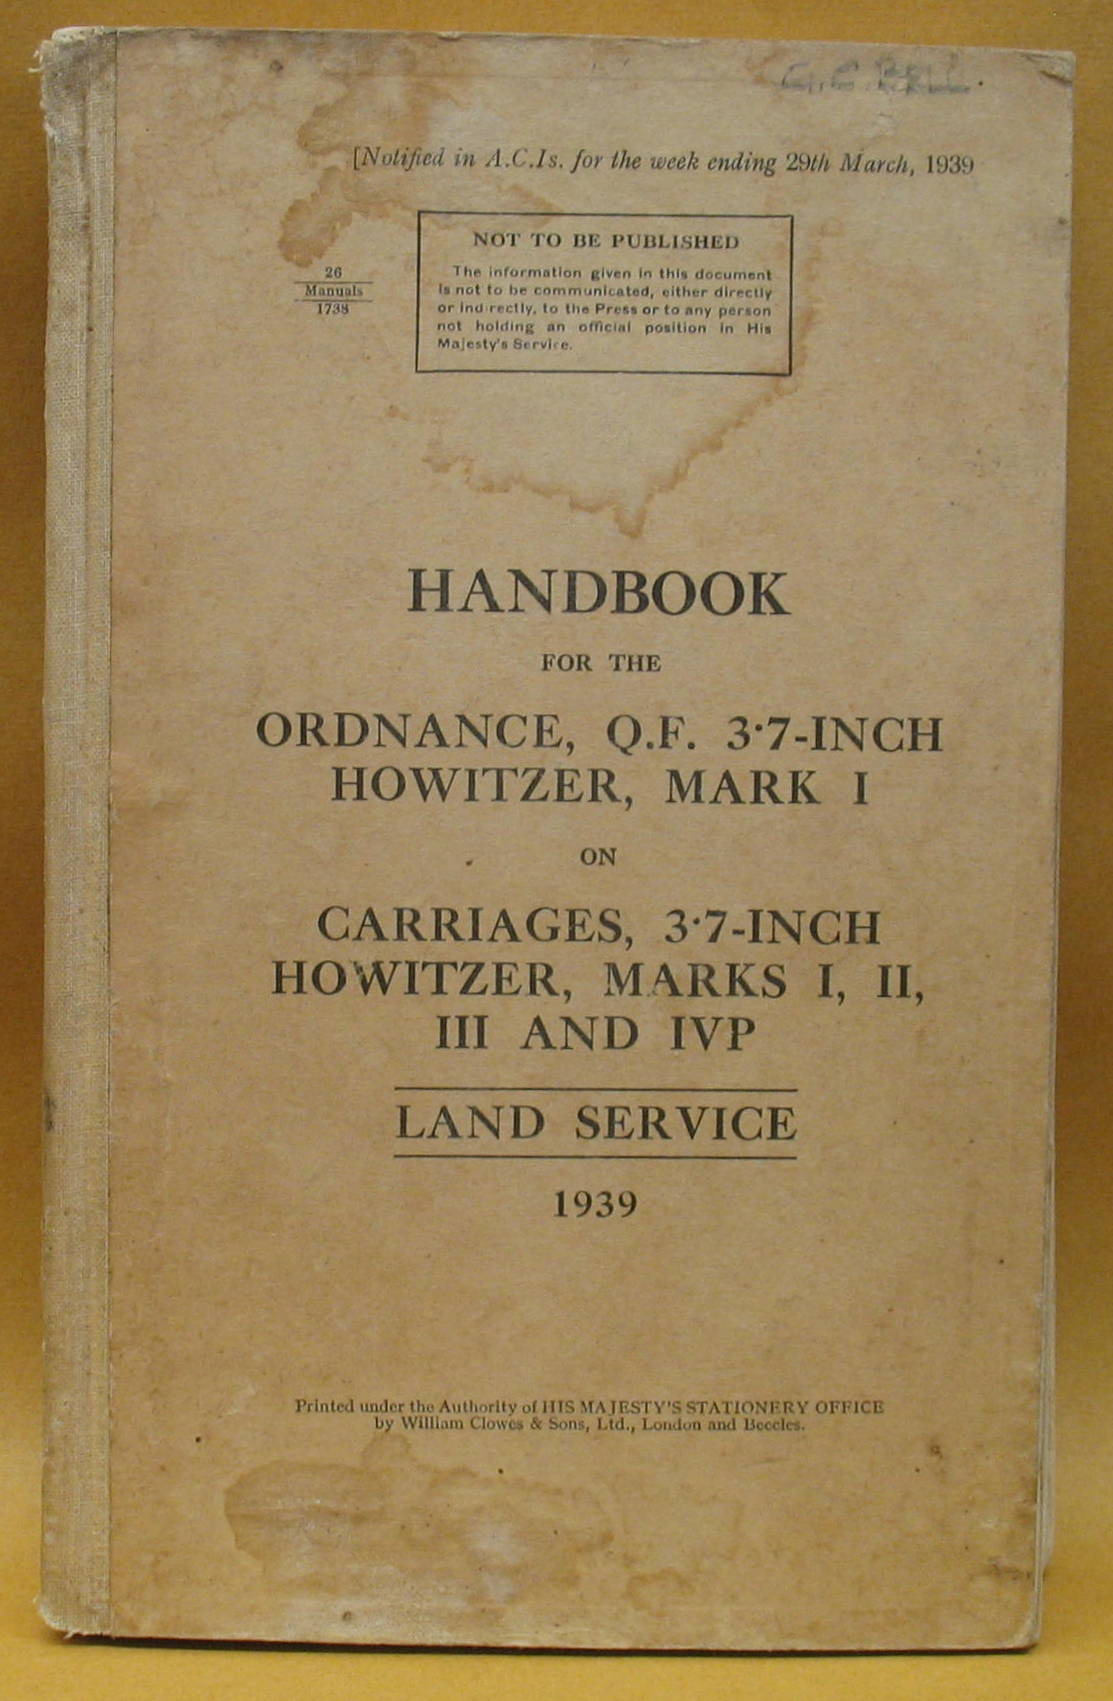 Image for HANDBOOK for the ORDNANCE, Q.F. 3.7-INCH HOWITZER MARK I on CARRIAGES, 3.7-INCH HOWITZER, MARKS I, II, III AND IVP LAND SERVICE 1939